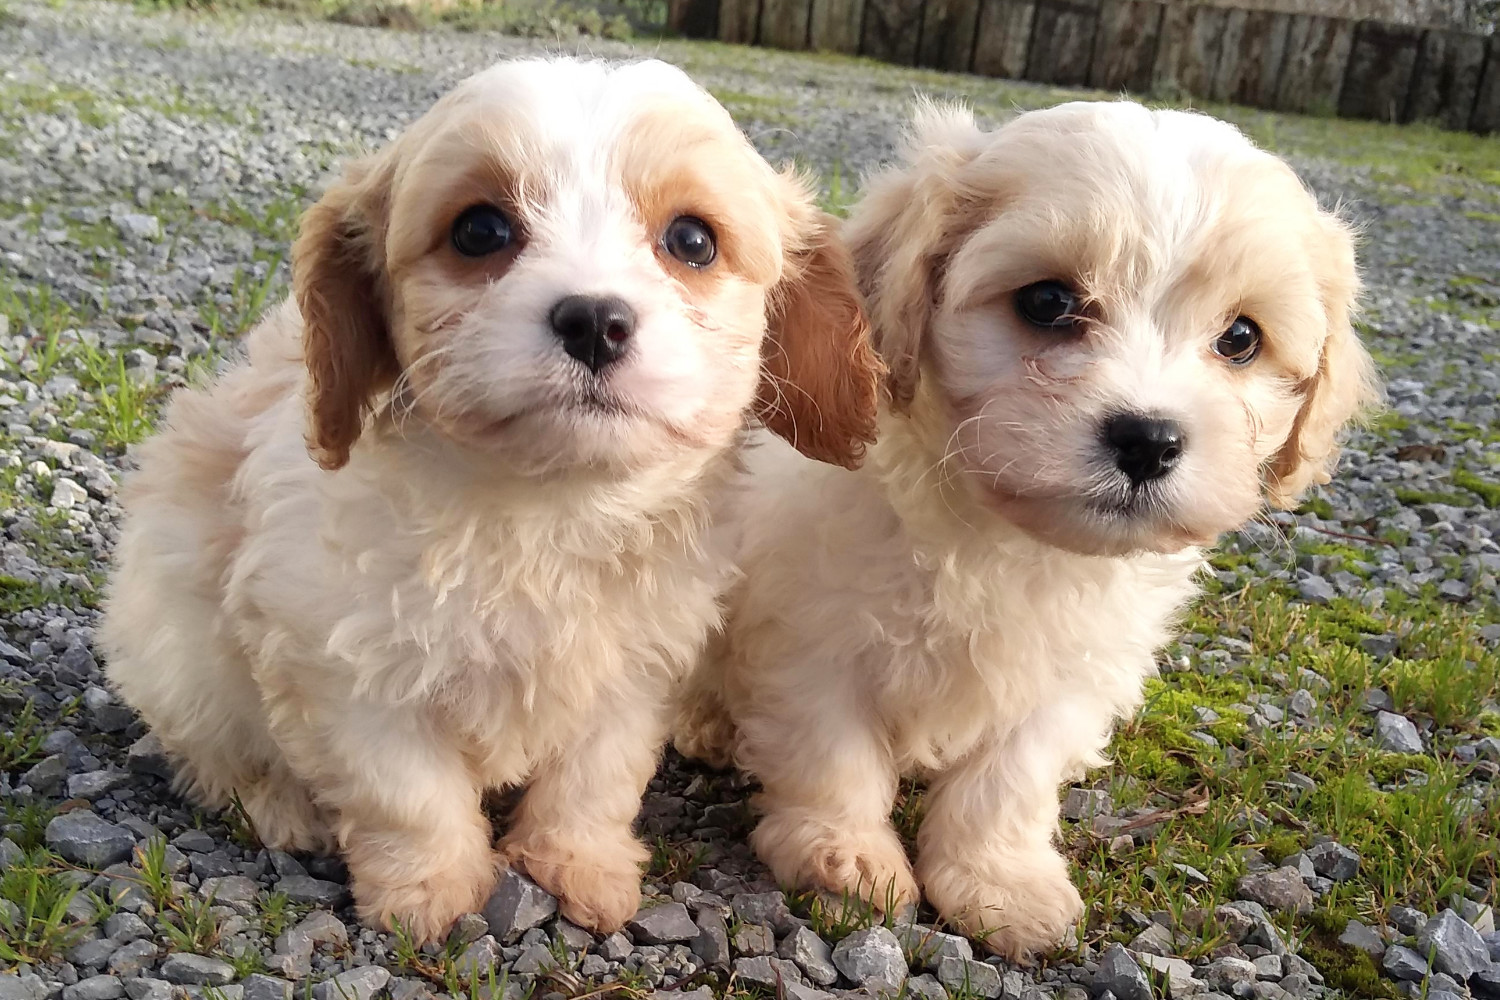 Rossbane Kennels Cavachon And Shichon Puppies Cavachon Puppies Shichon Puppies For Sale In Limerick Ireland